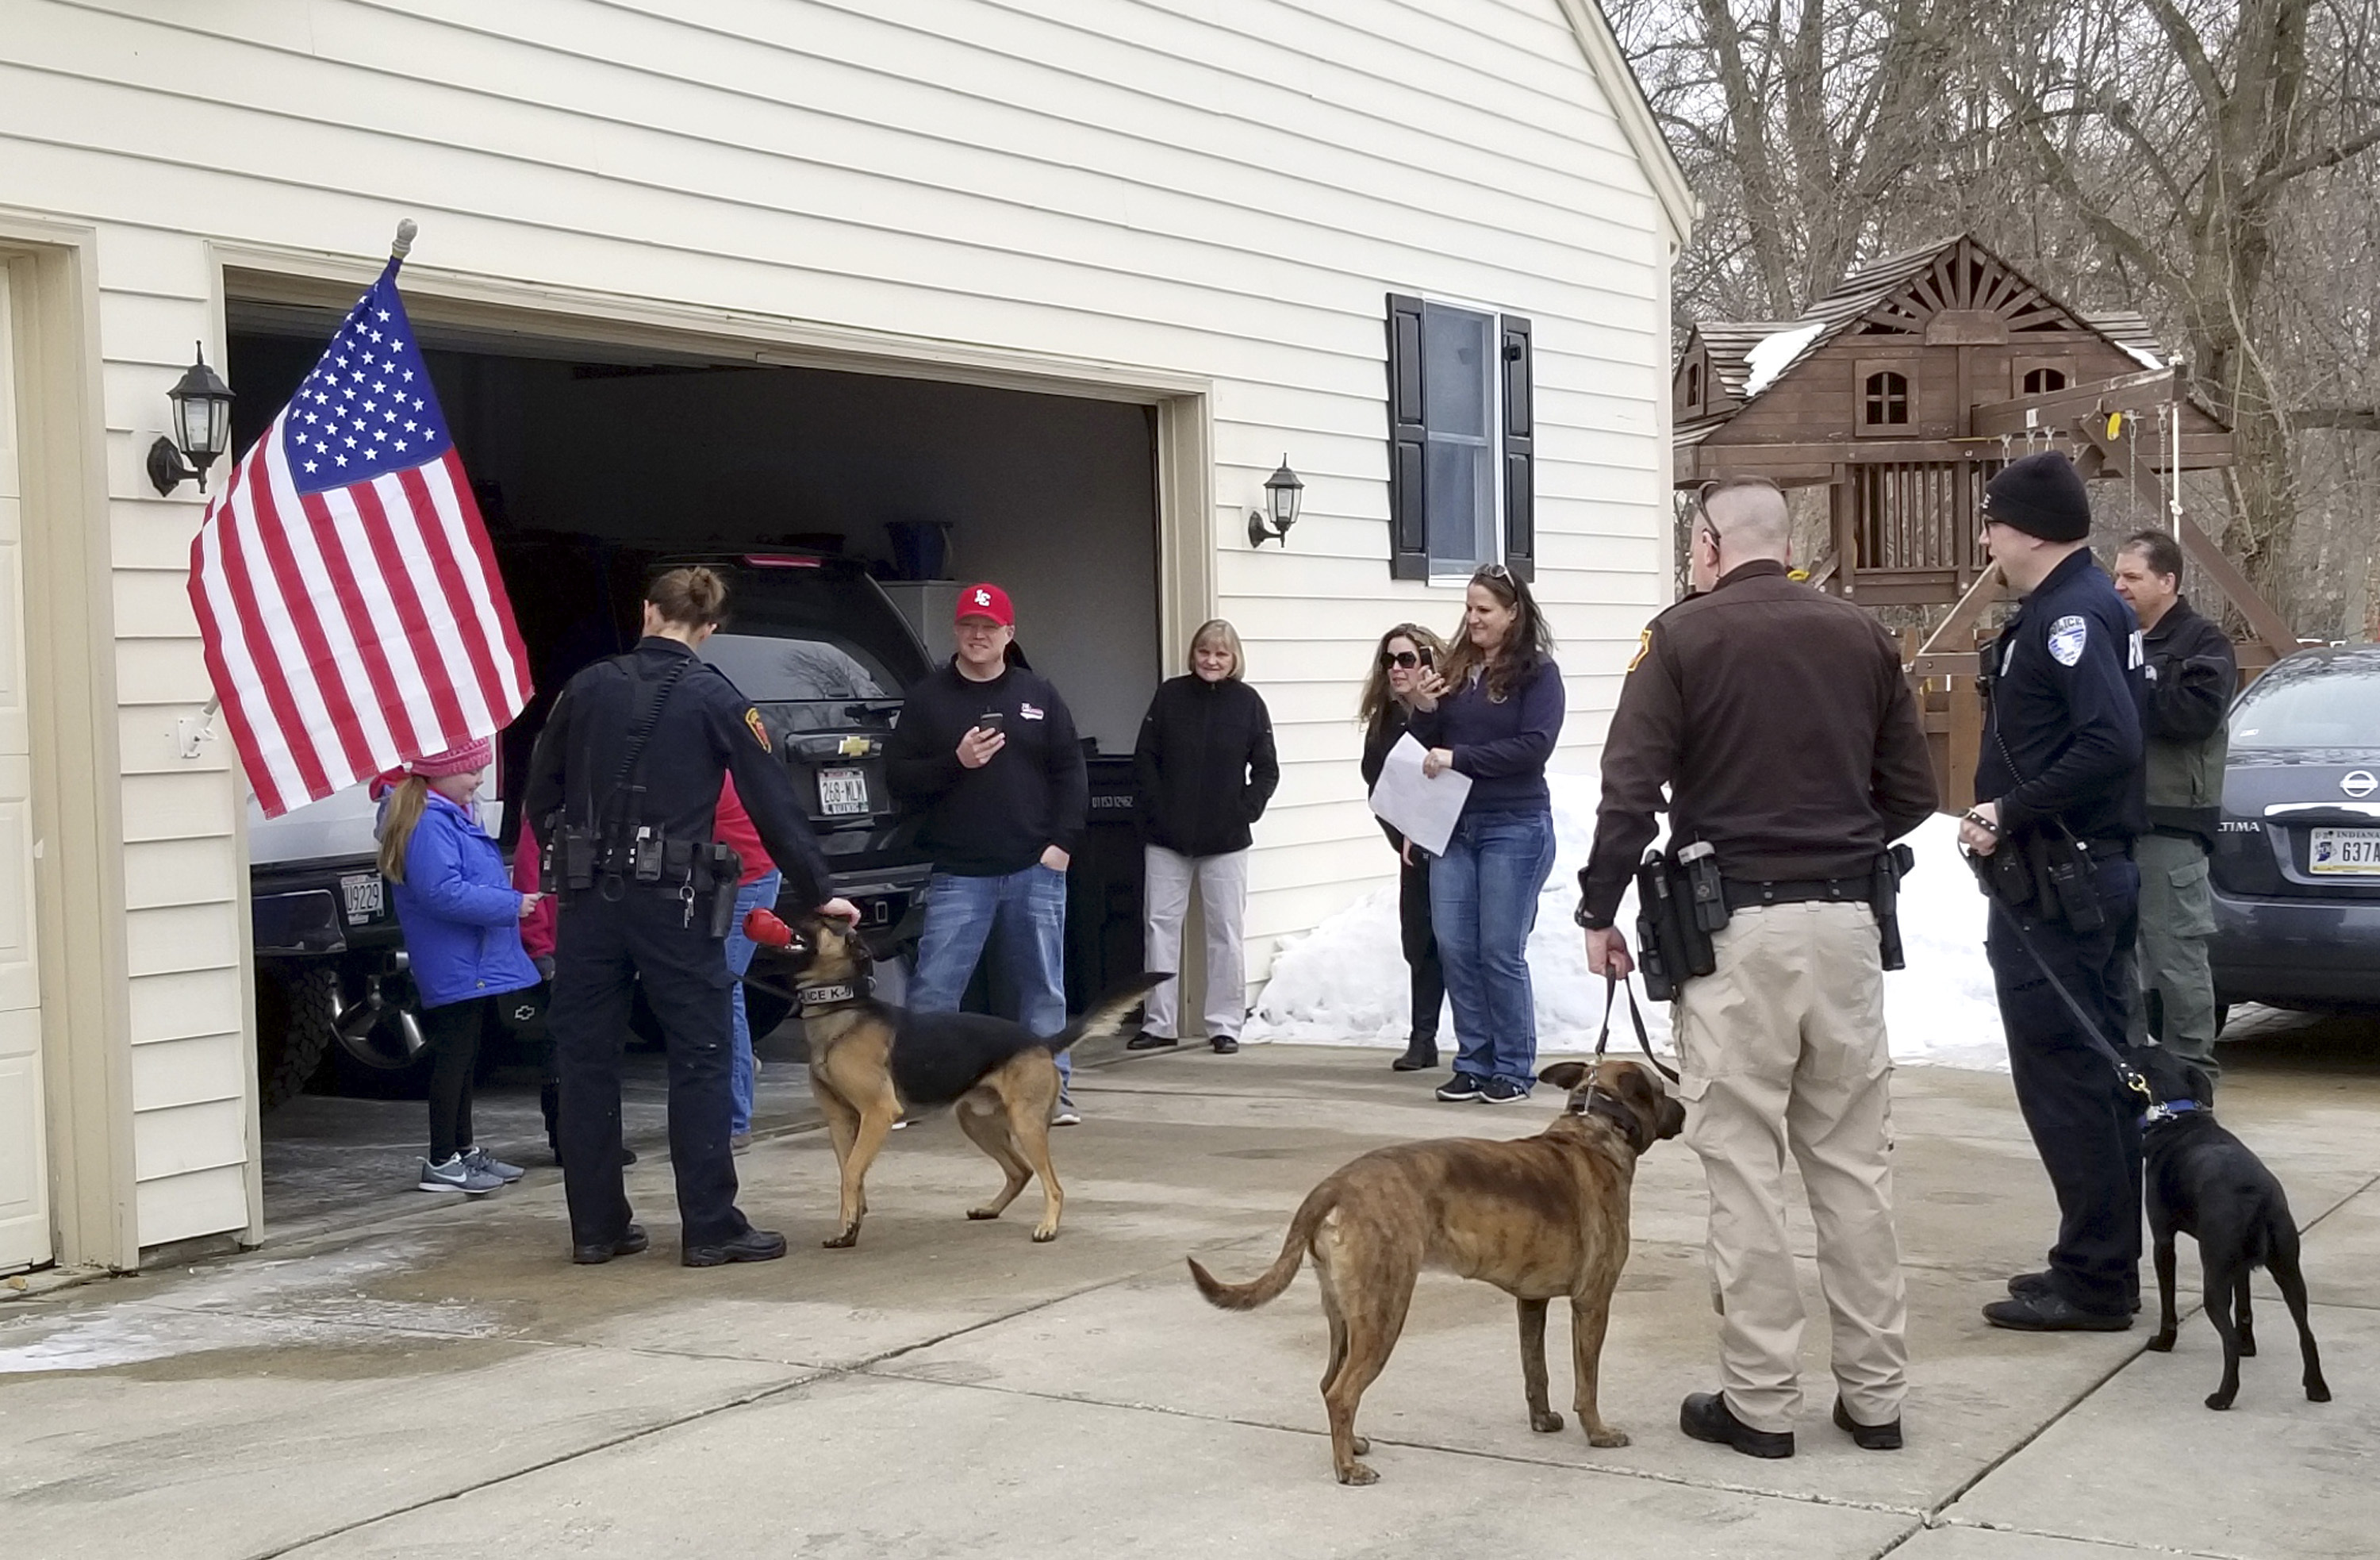 In this March 9, 2019 photo provided by the Hartford Police Department, Emma Mertens from Hartland, Wis., left, is visited by several K9 law enforcement officers and their dogs at her home in Hartford.